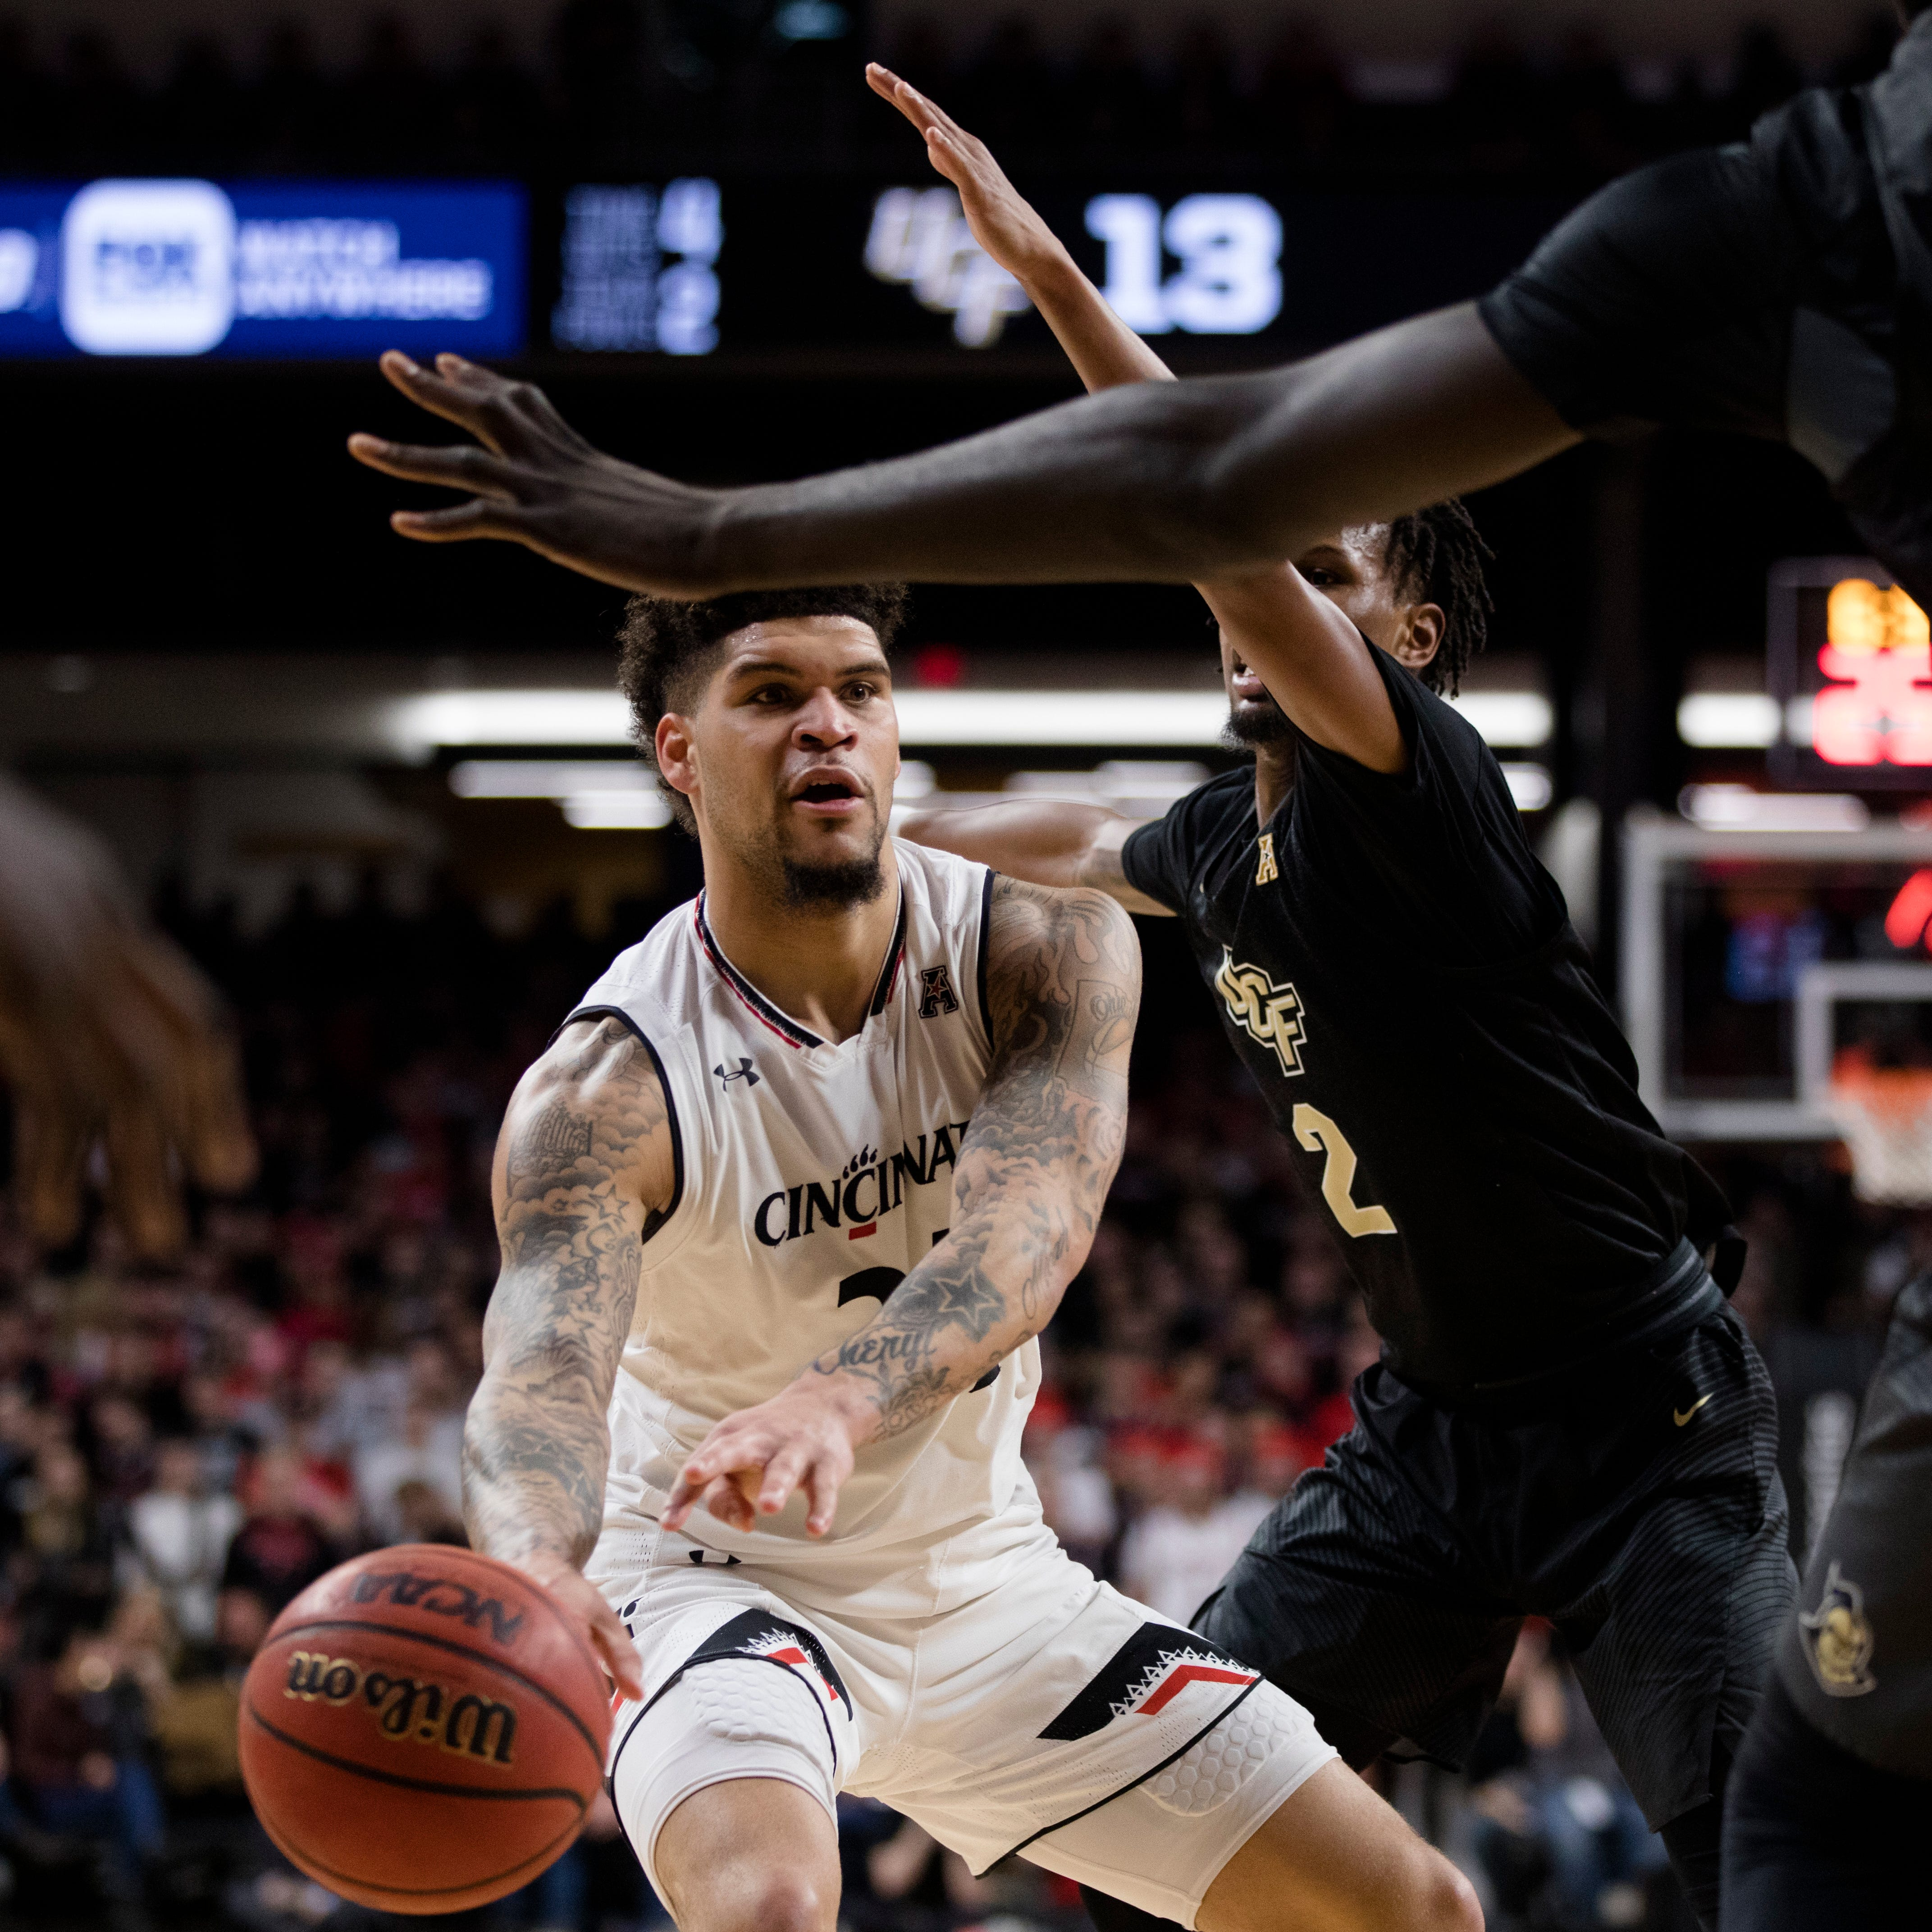 Cincinnati Bearcats slog past Central Florida Knights at Fifth Third Arena